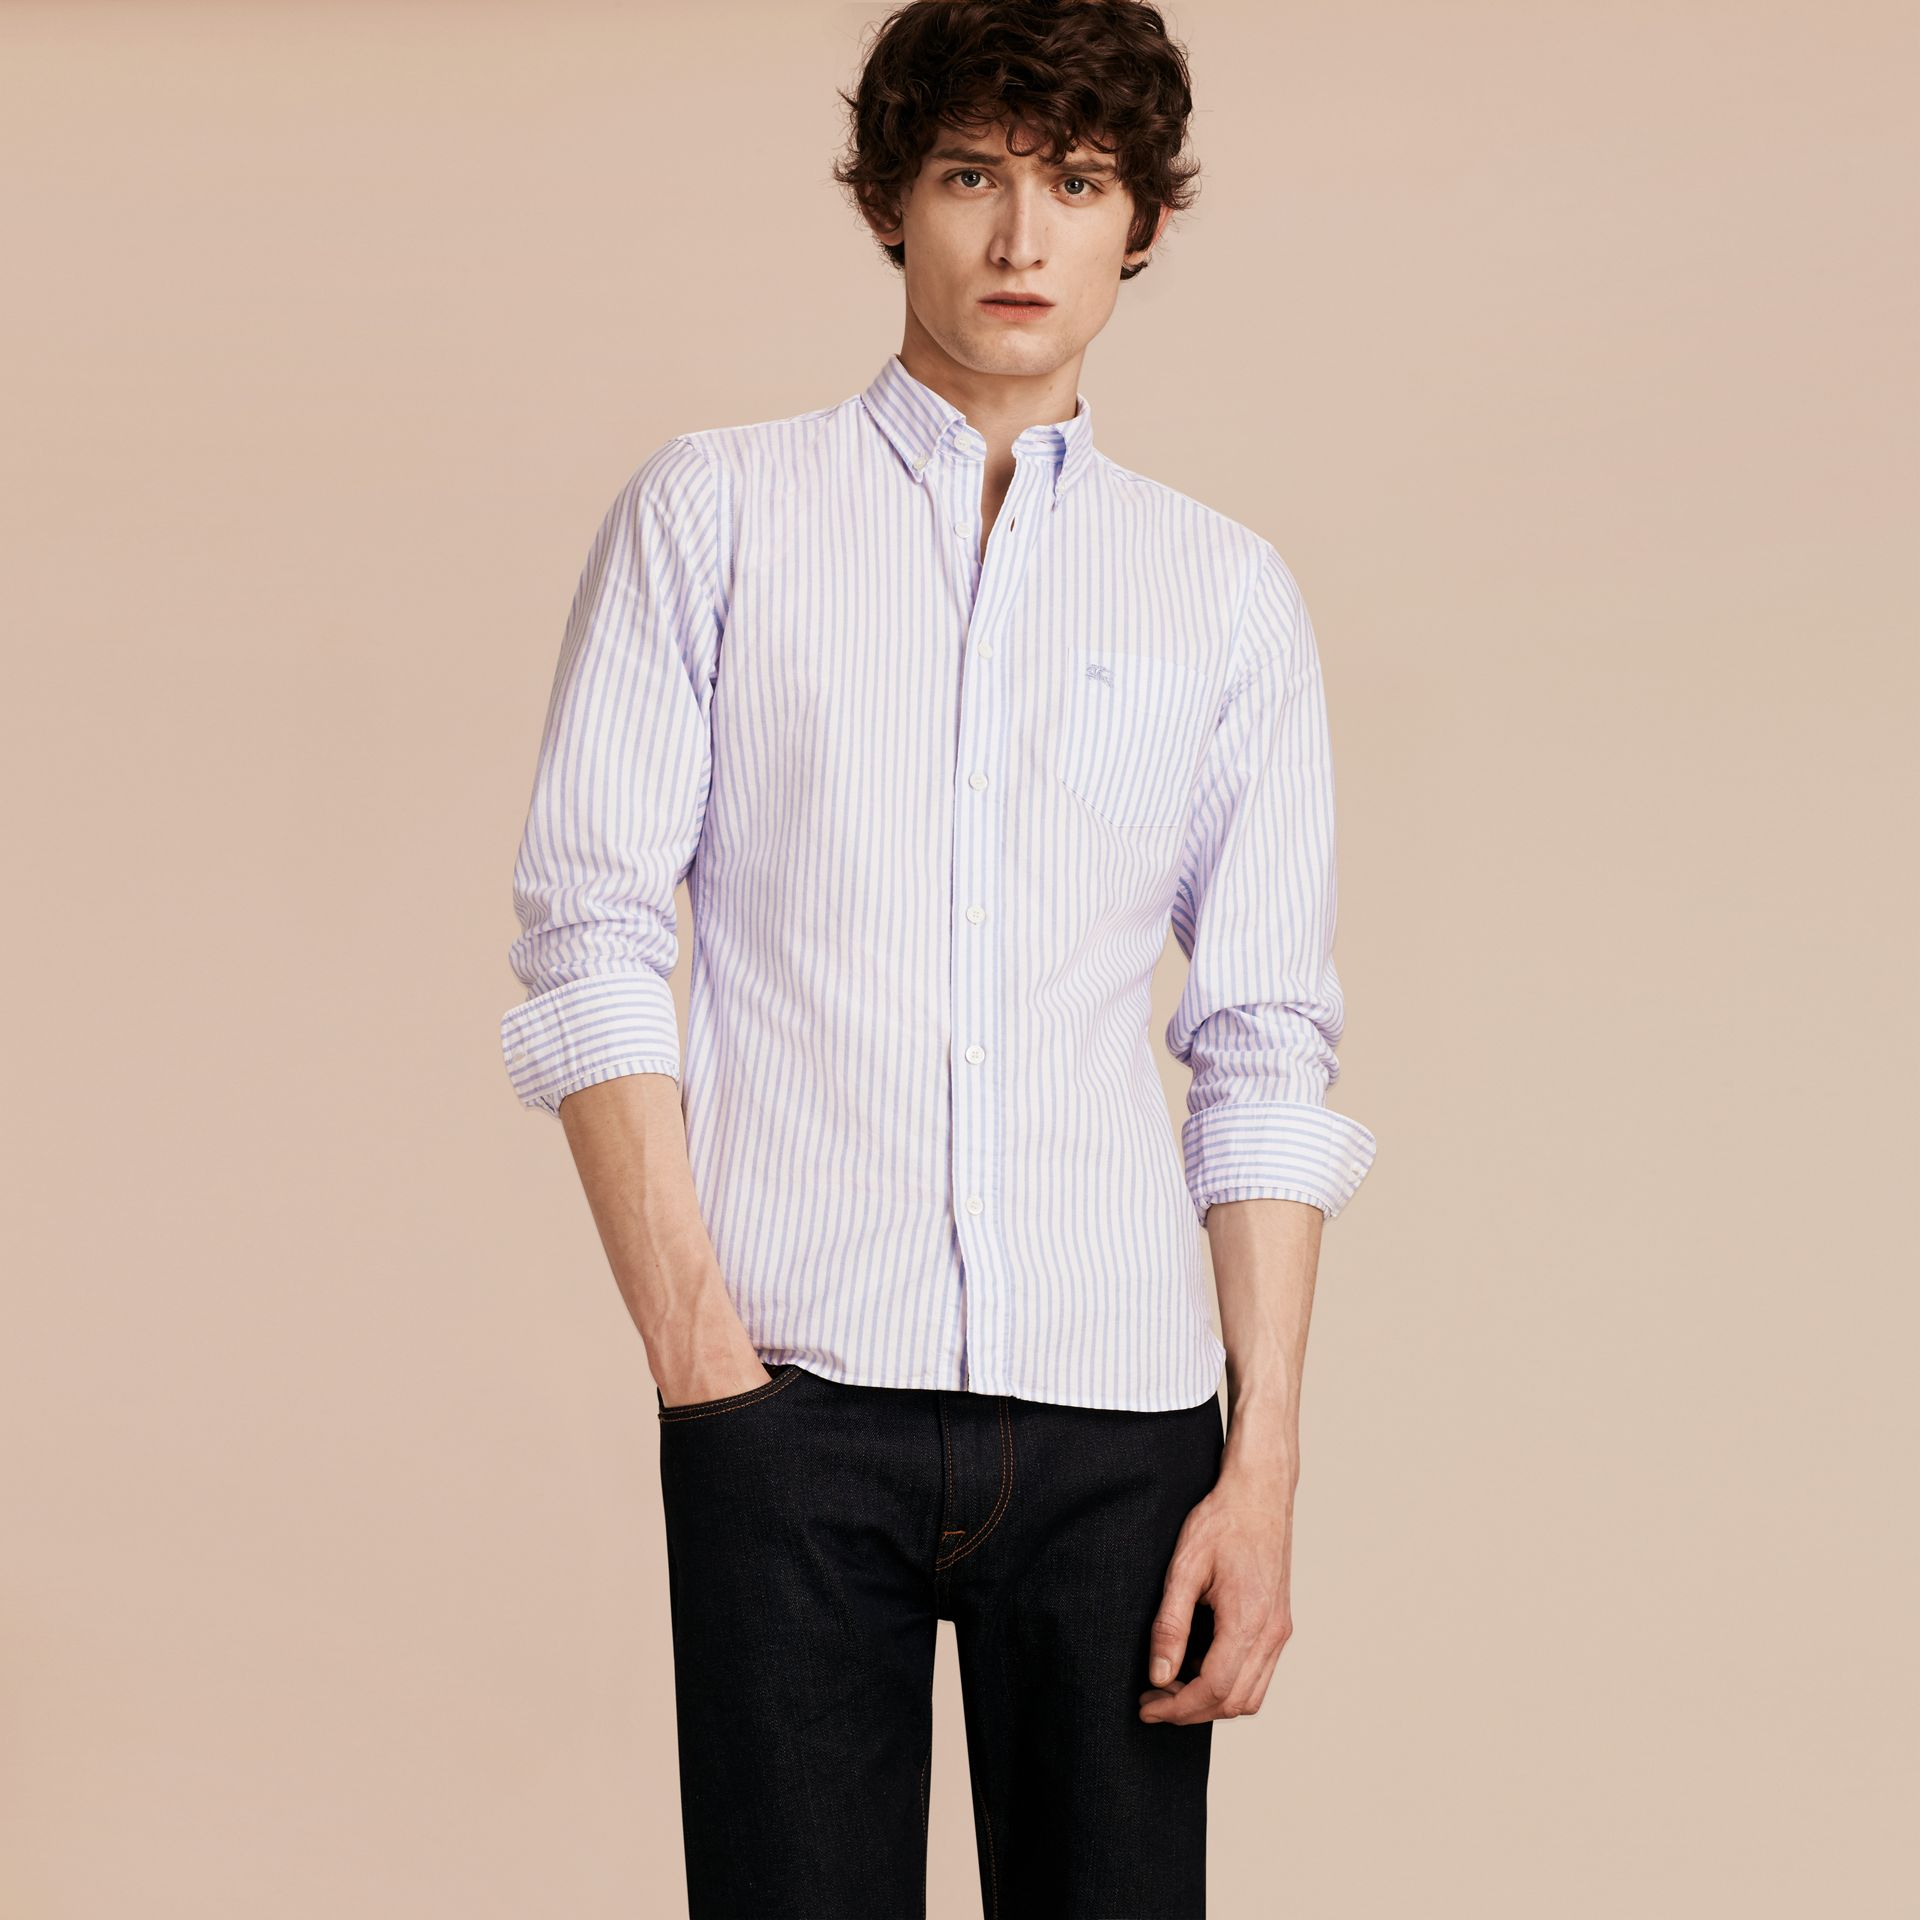 Pale blue Button-down Collar Oxford Stripe Cotton Shirt Pale Blue - gallery image 5